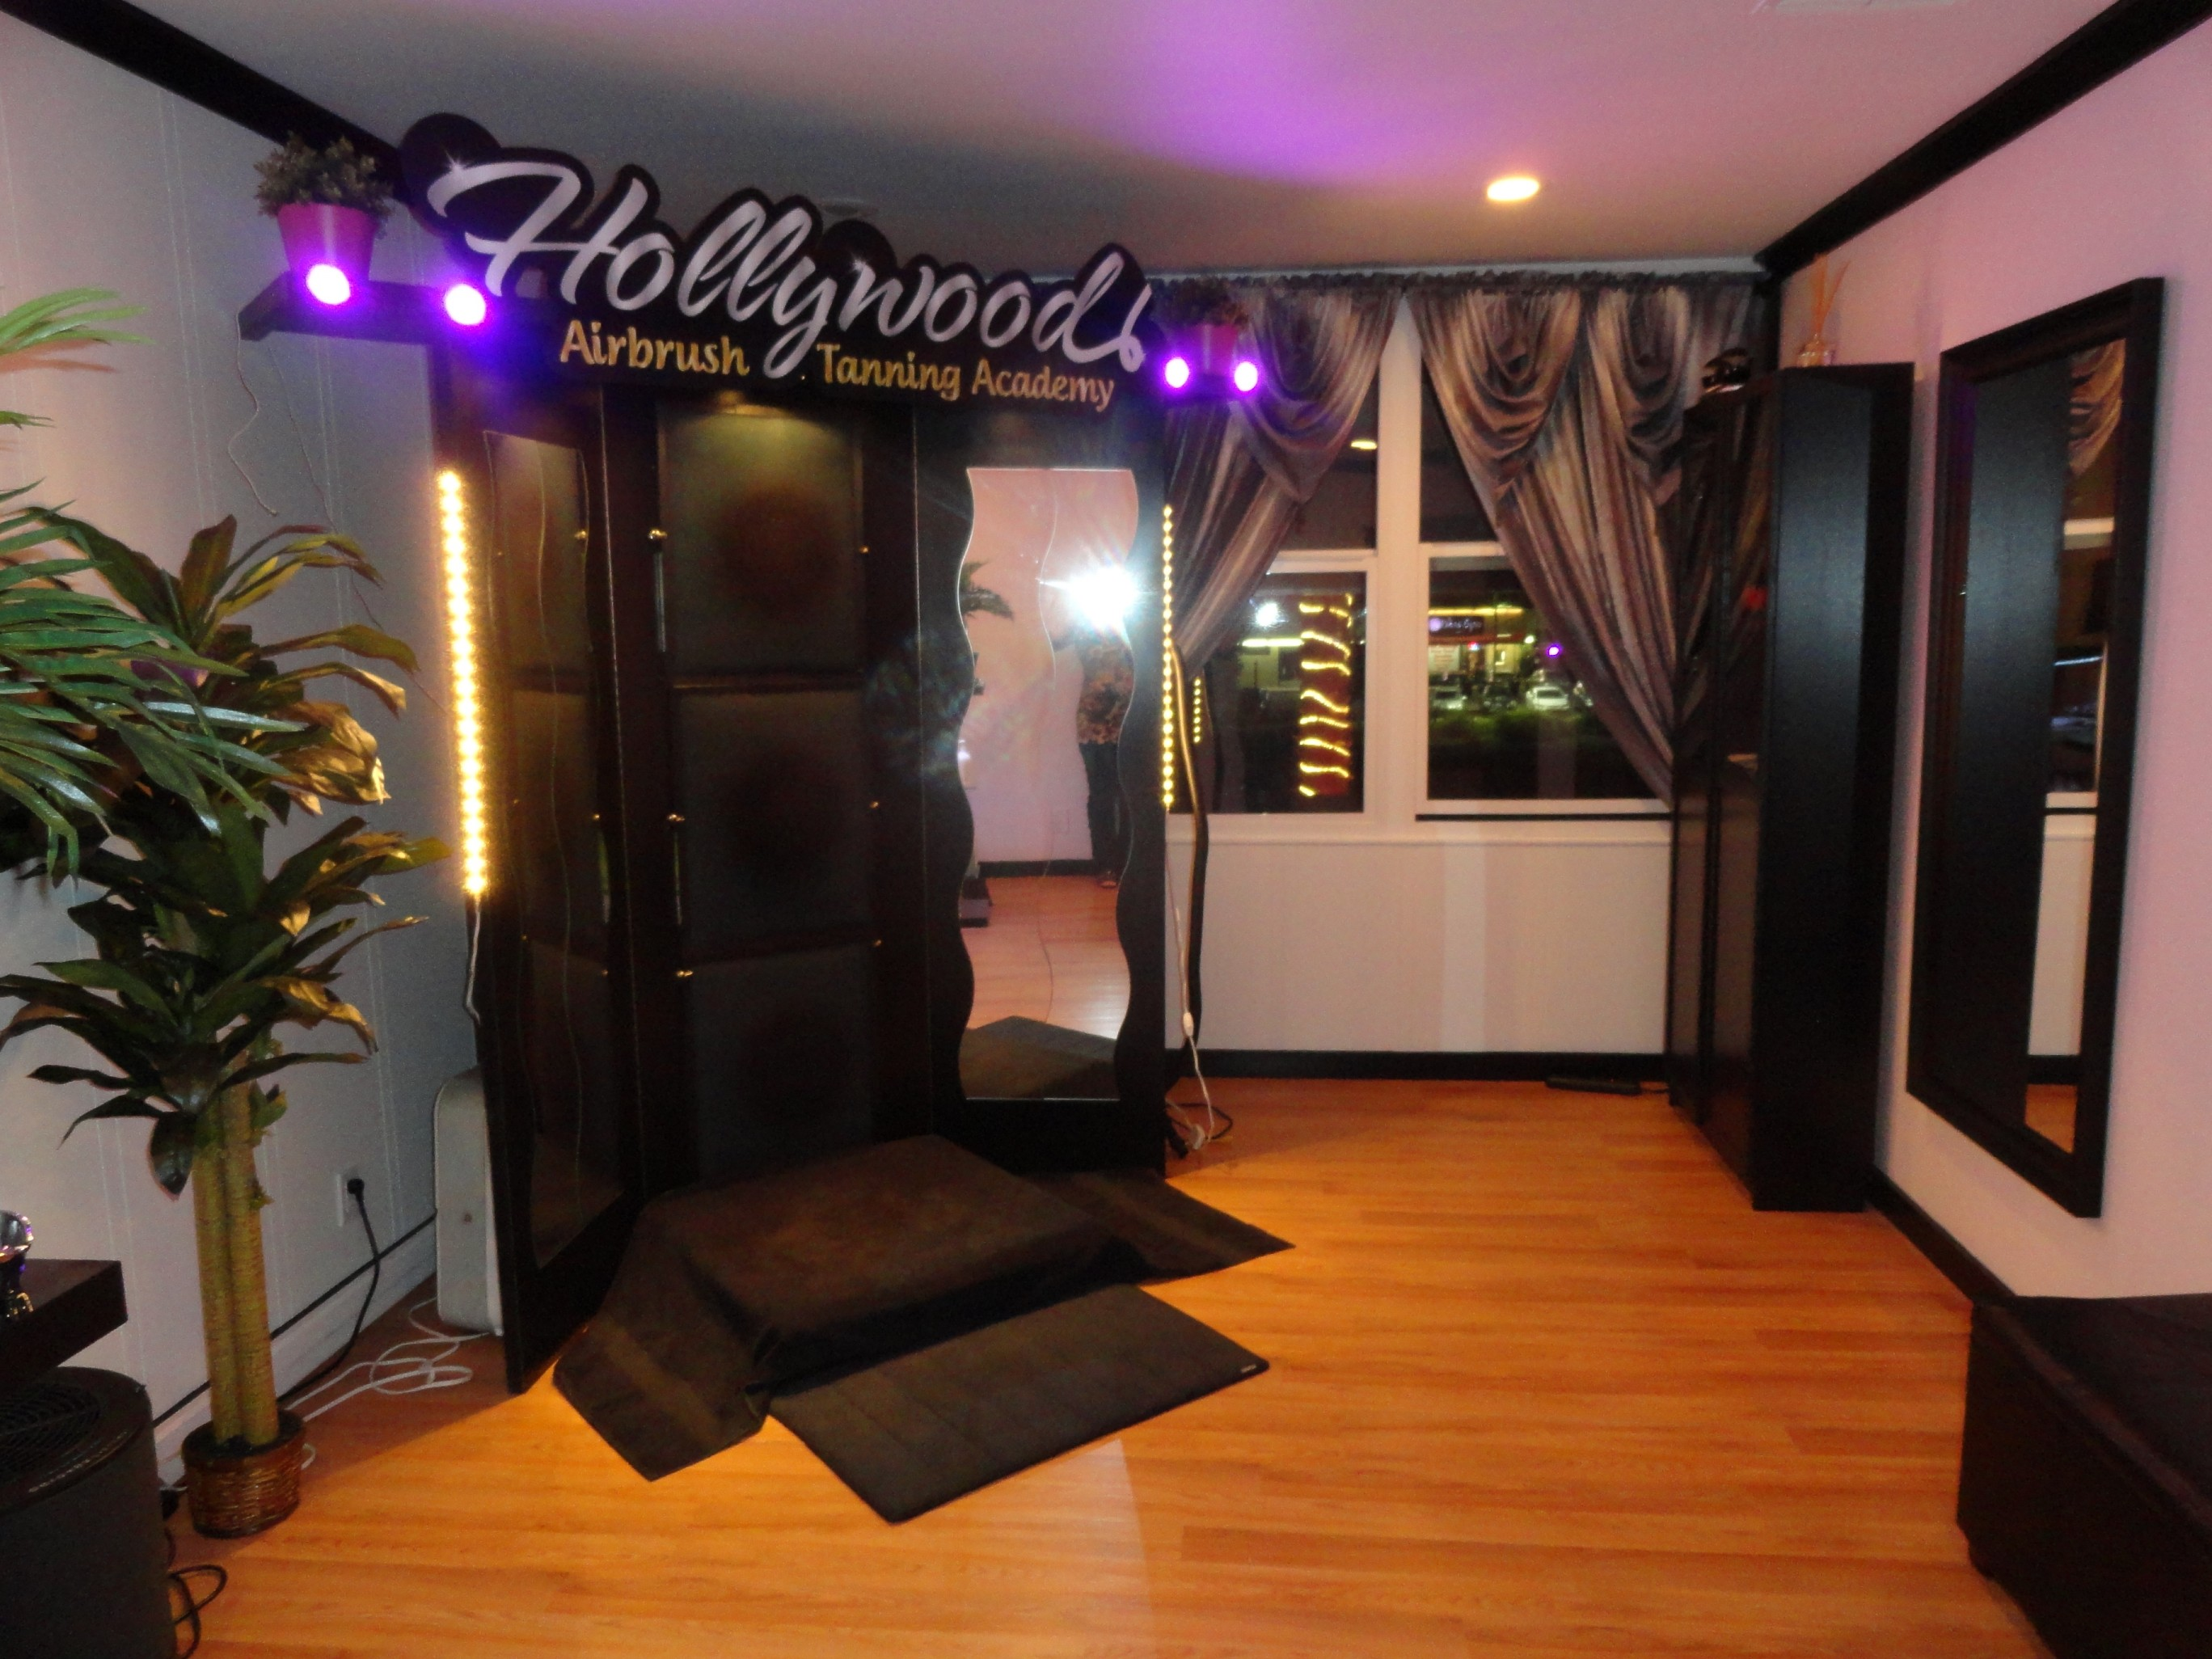 Hollywood Airbrush Tanning Academy Reveals Video On The